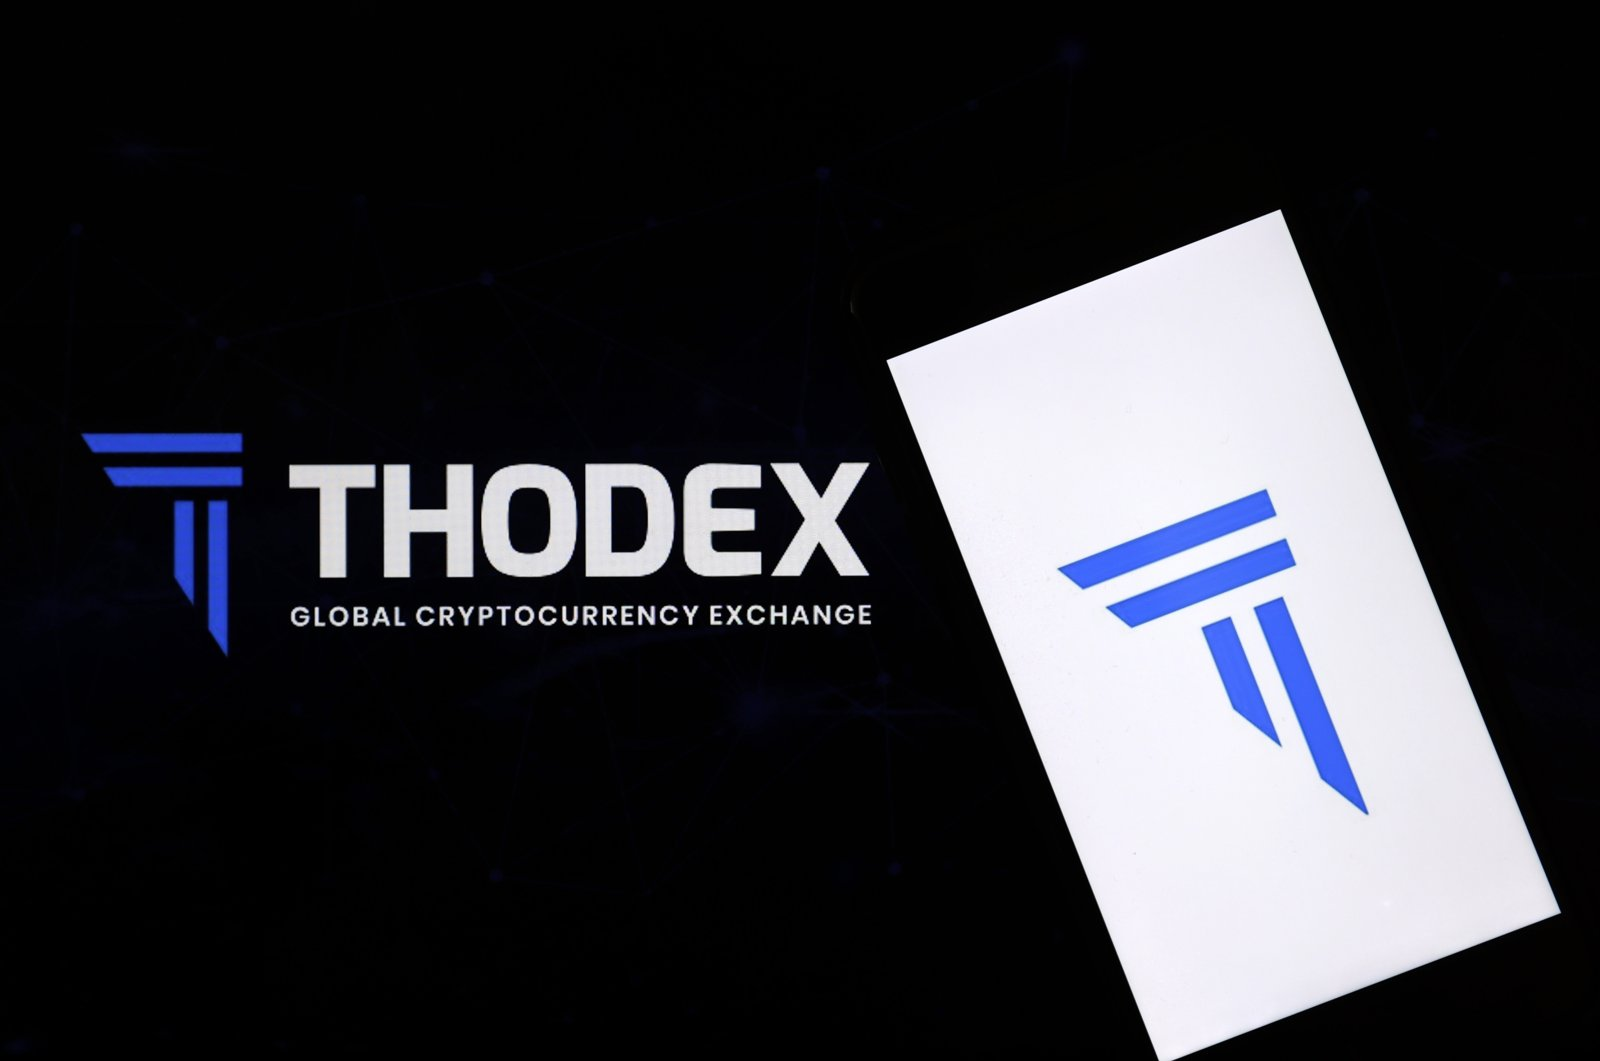 $2B crypto scam: Turkish exchange Thodex goes silent, sparks user outcry |  Daily Sabah